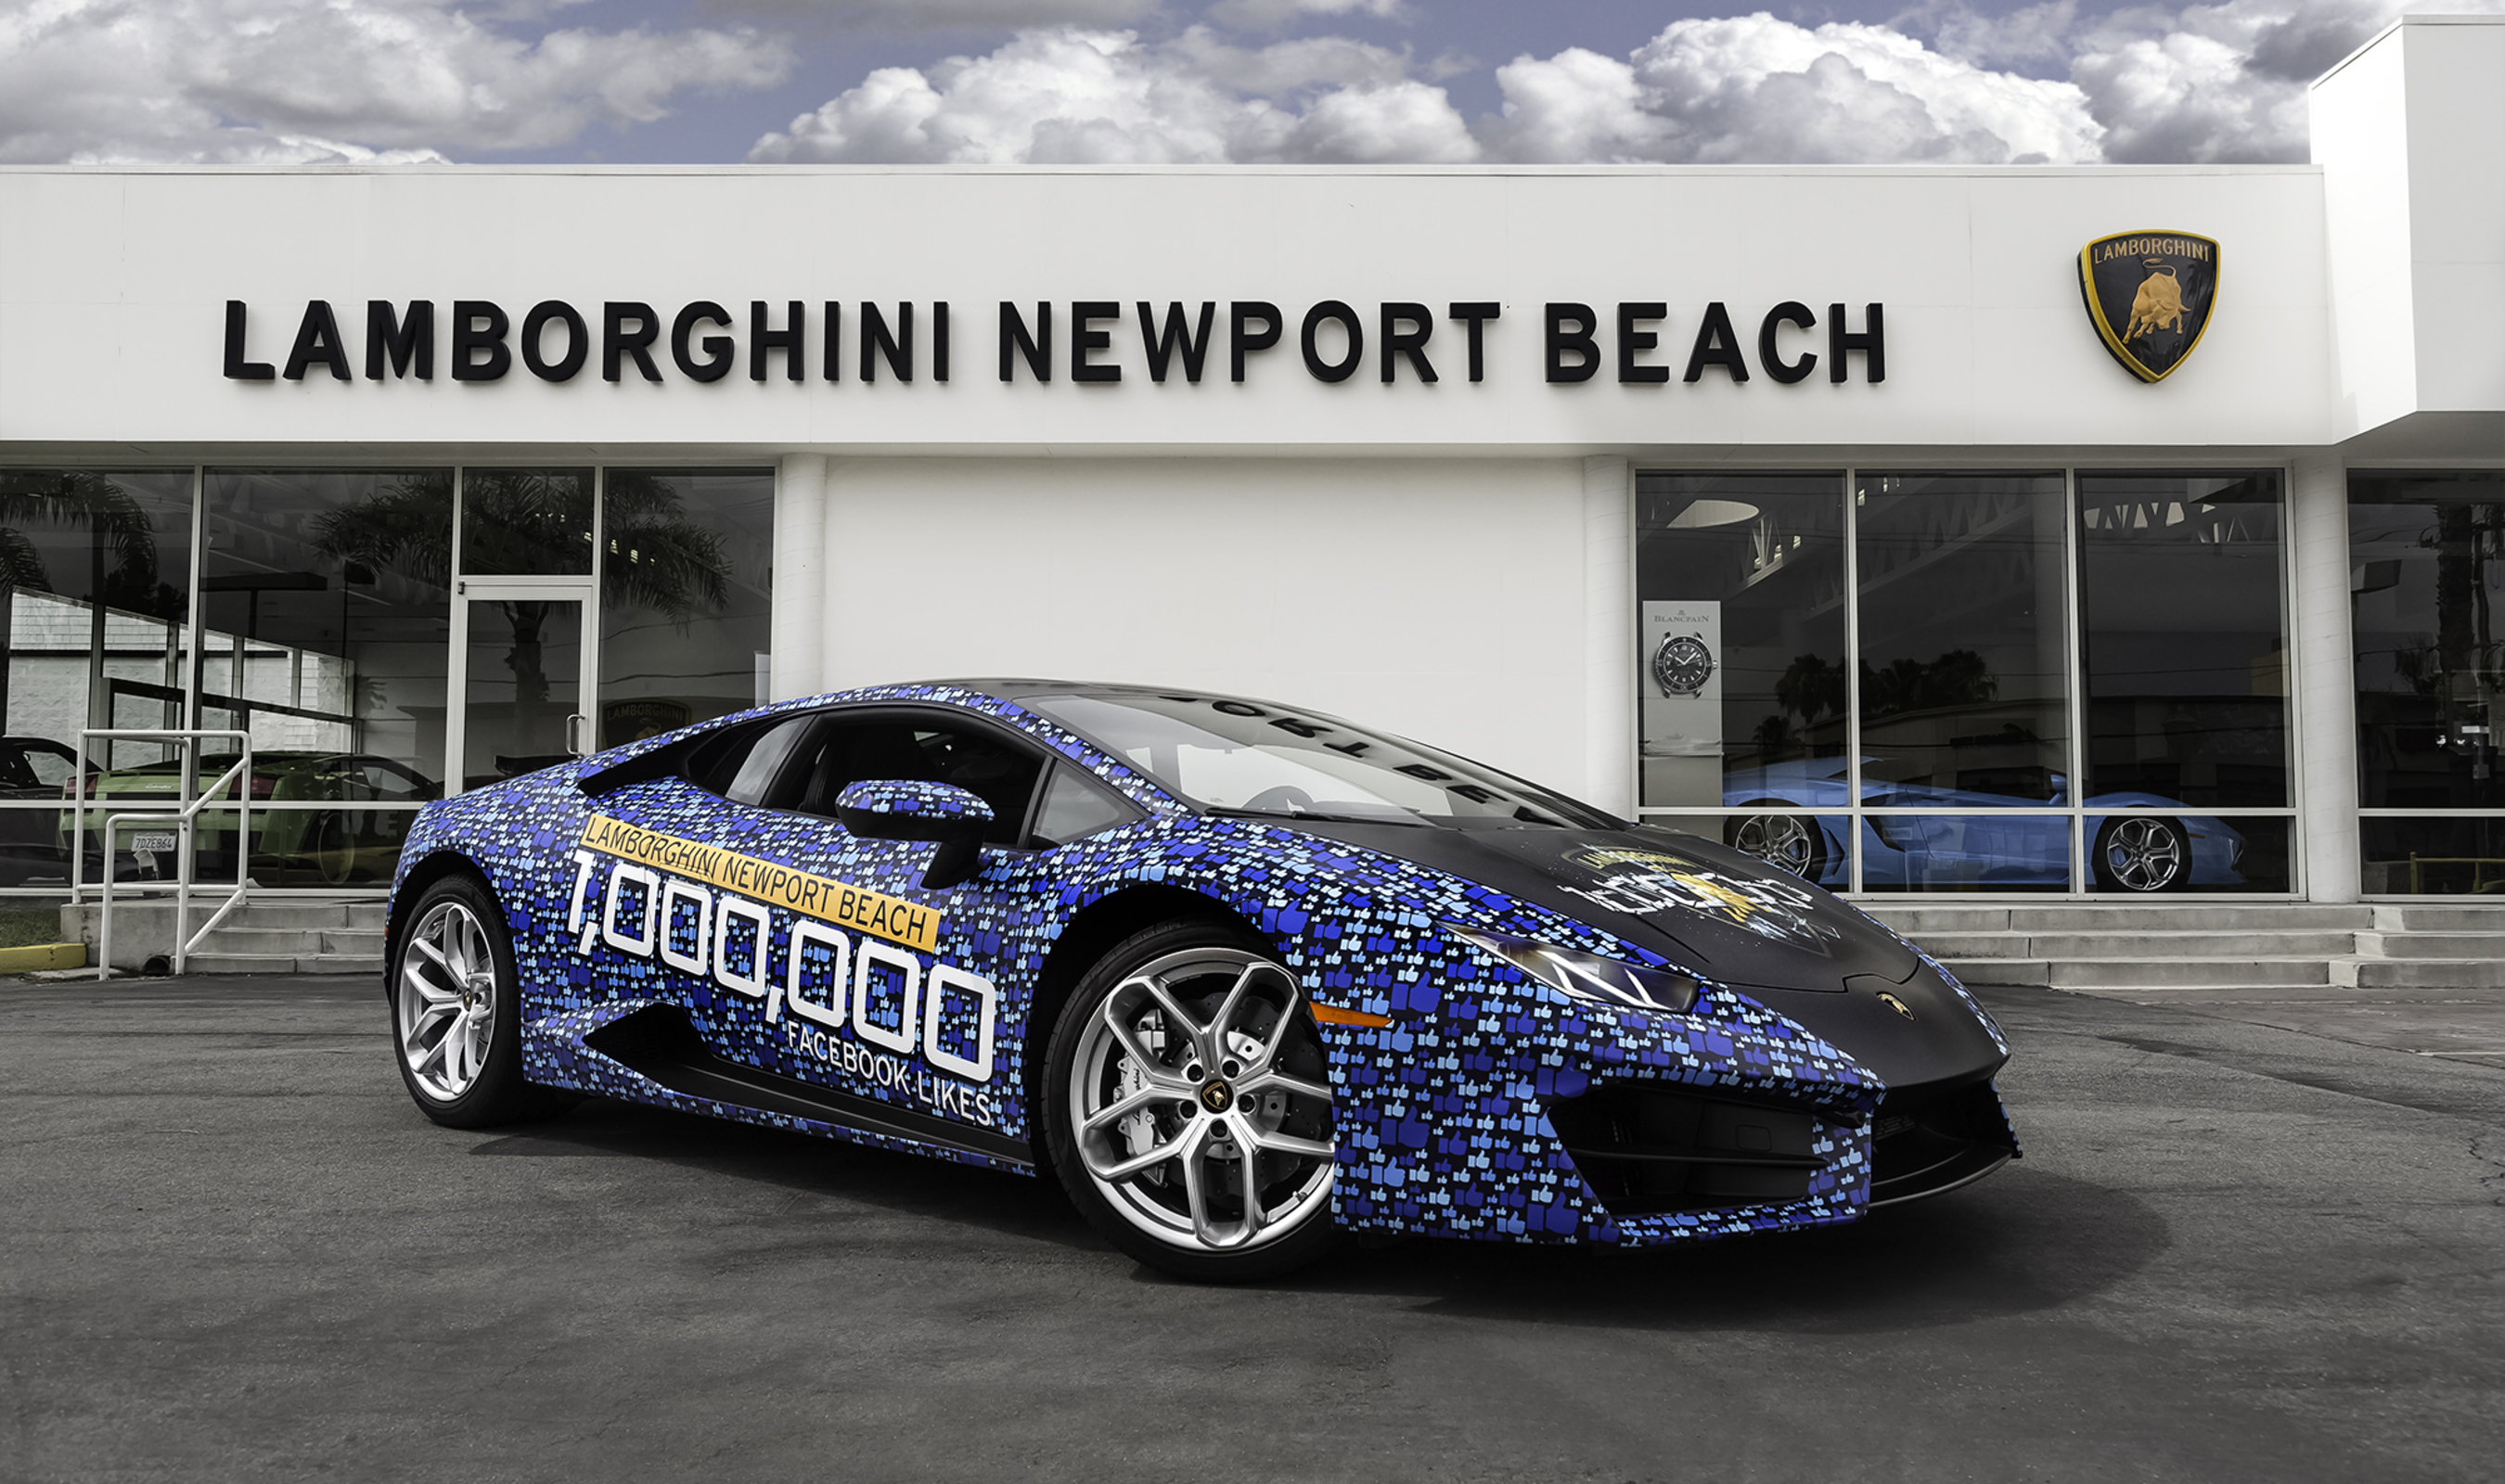 Lamborghini Newport Beach First To Million Likes On Facebook - Lamborghini newport beach car show 2018